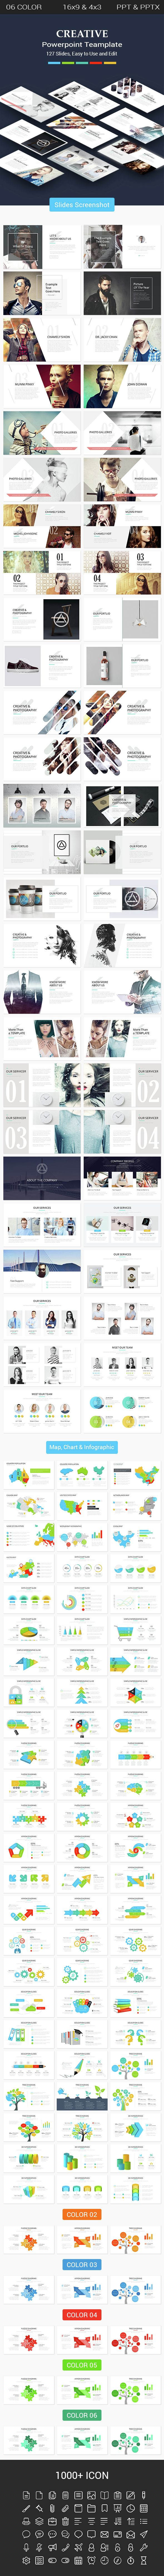 Creative powerpoint presentation template download here http creative powerpoint presentation template download here httpgraphicriver alramifo Gallery